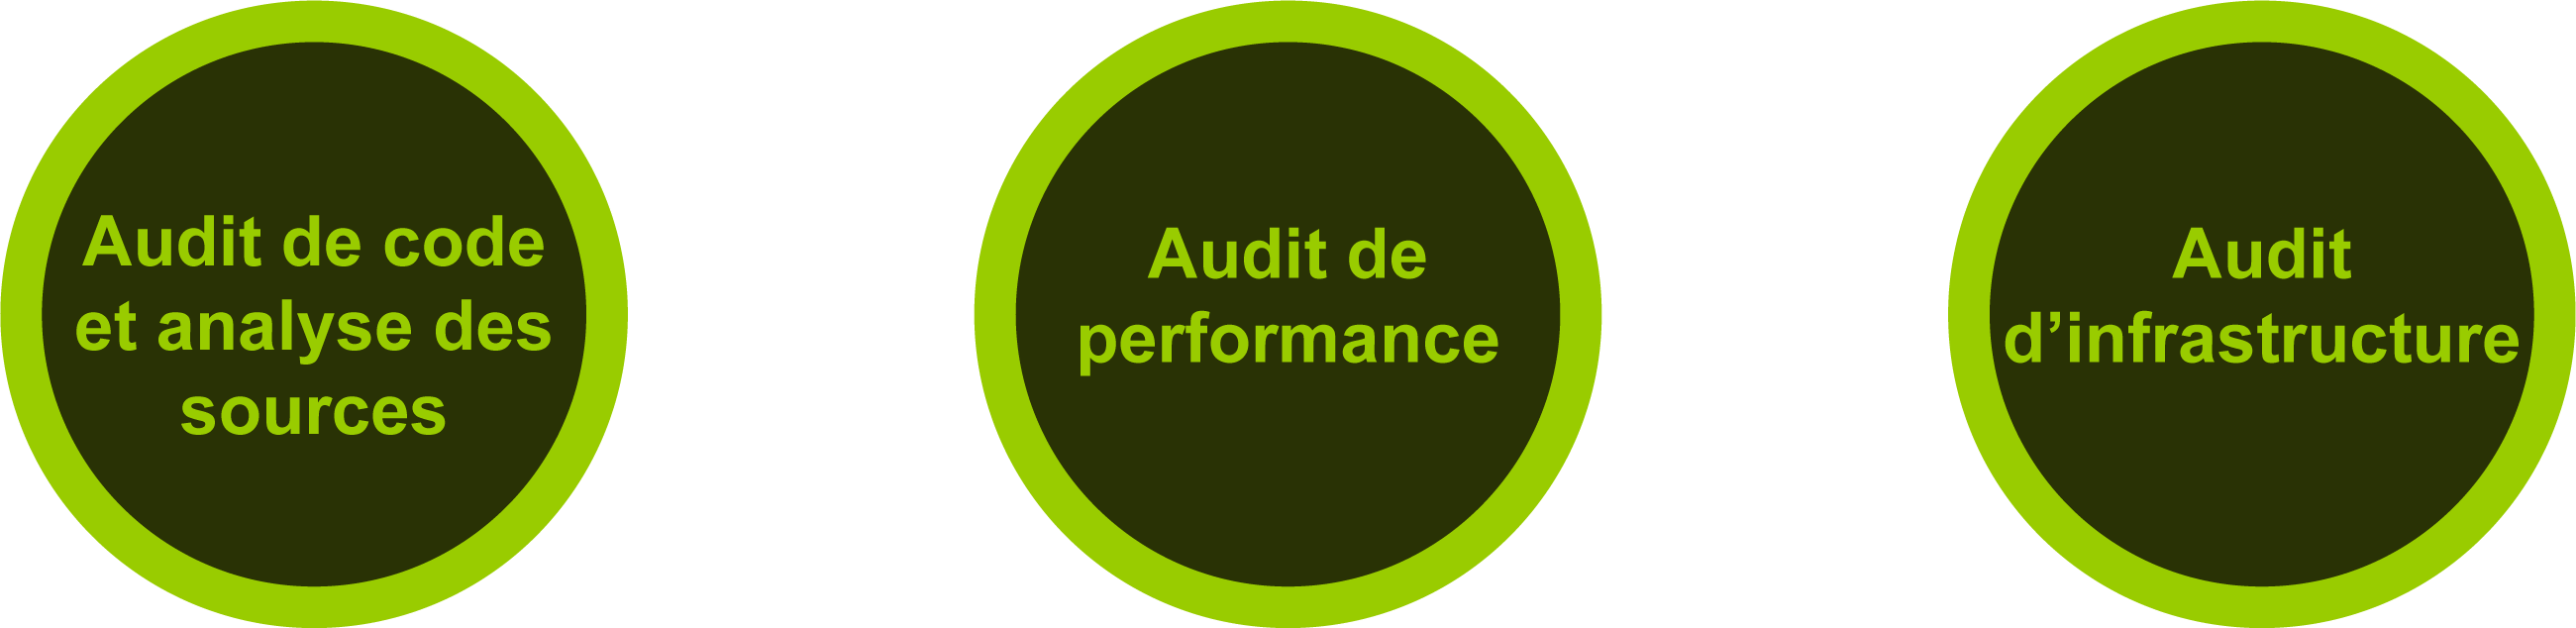 audit-securite-prestation-performance